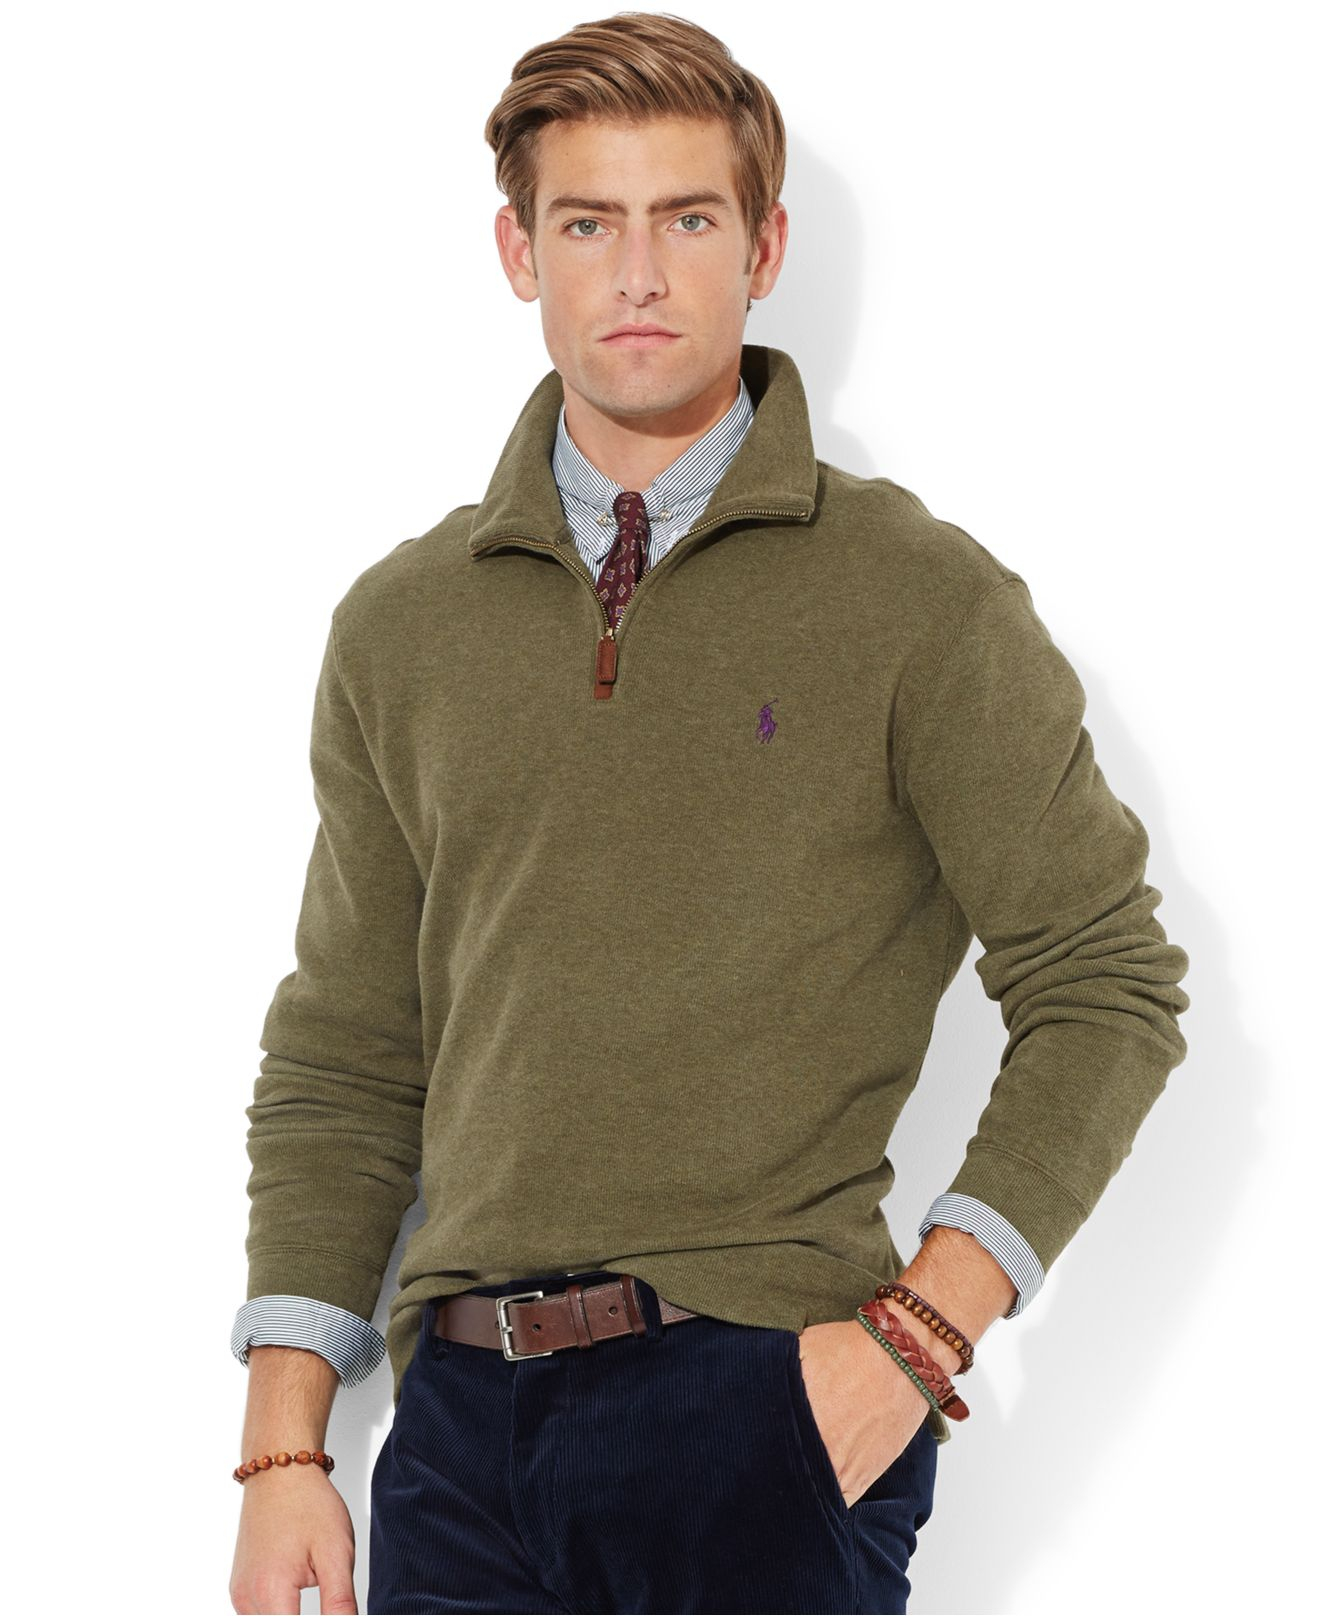 Polo ralph lauren French-Rib Half-Zip Pullover Sweater in Green ...